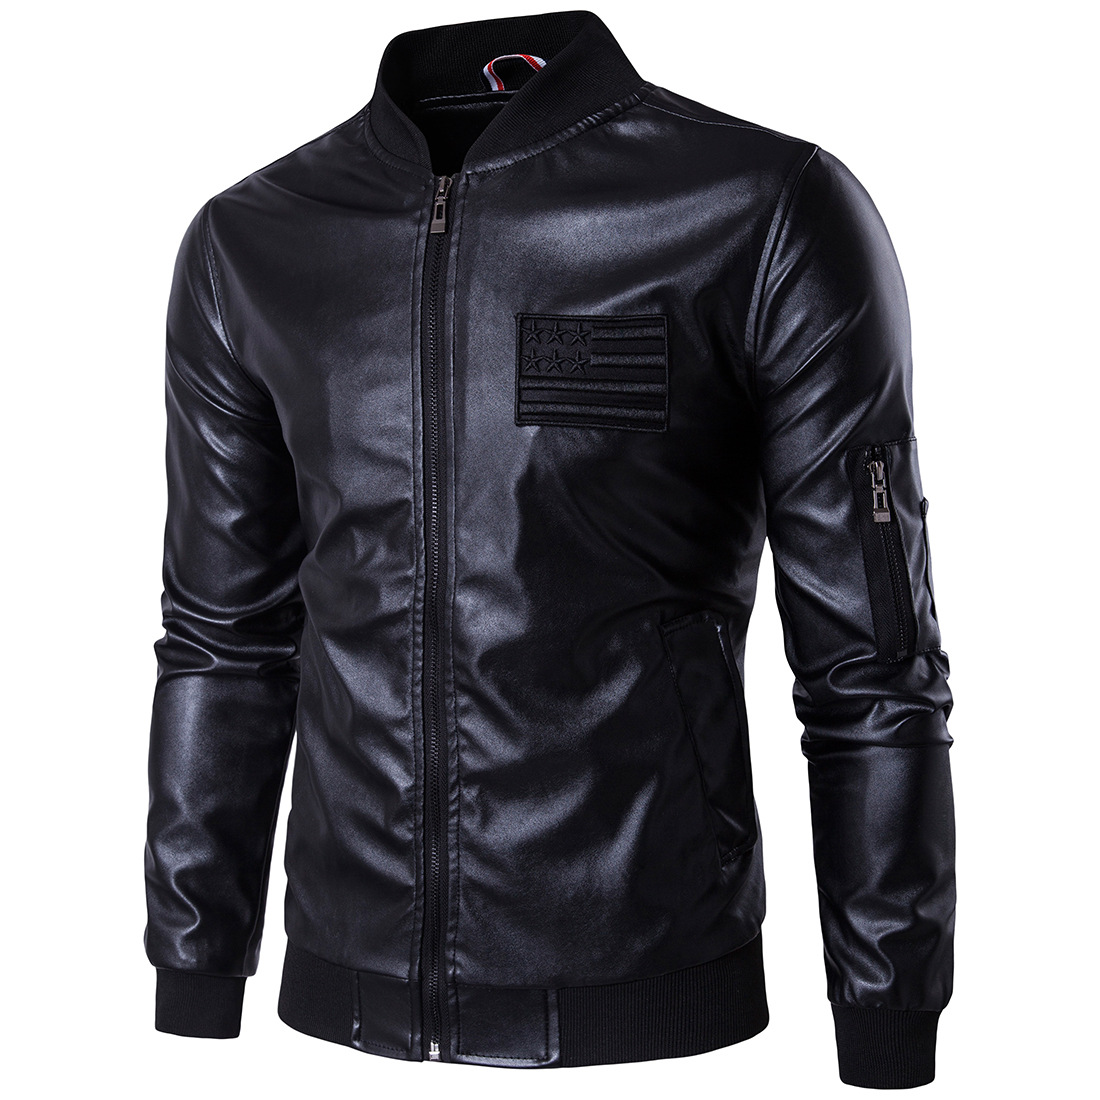 MarKyi 2017 brand new embroidery men 39 s winter leather jacket good quality long sleeve zipper mens motorcycle jacket eu size 5xl in Faux Leather Coats from Men 39 s Clothing